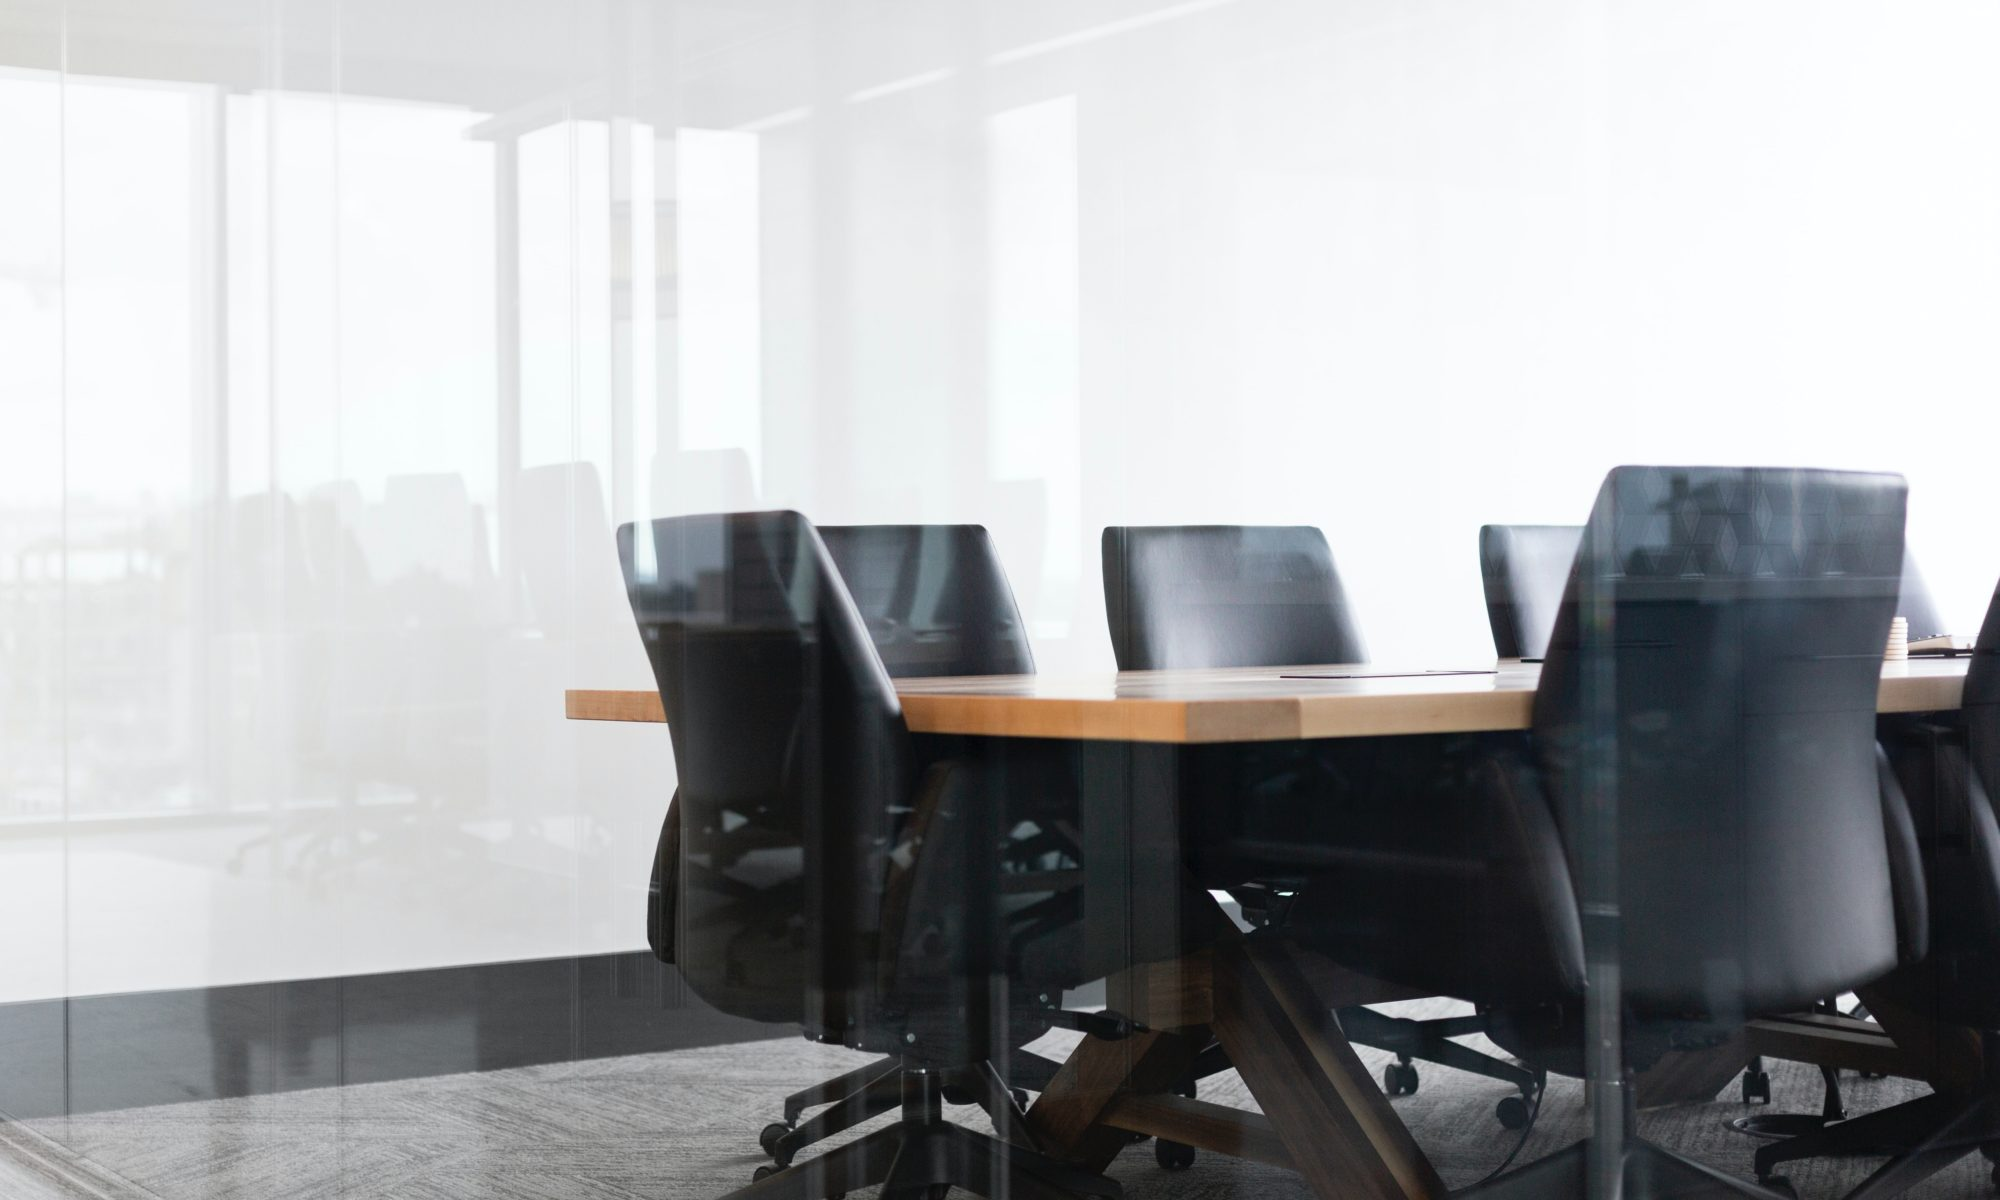 An image of an empty boardroom